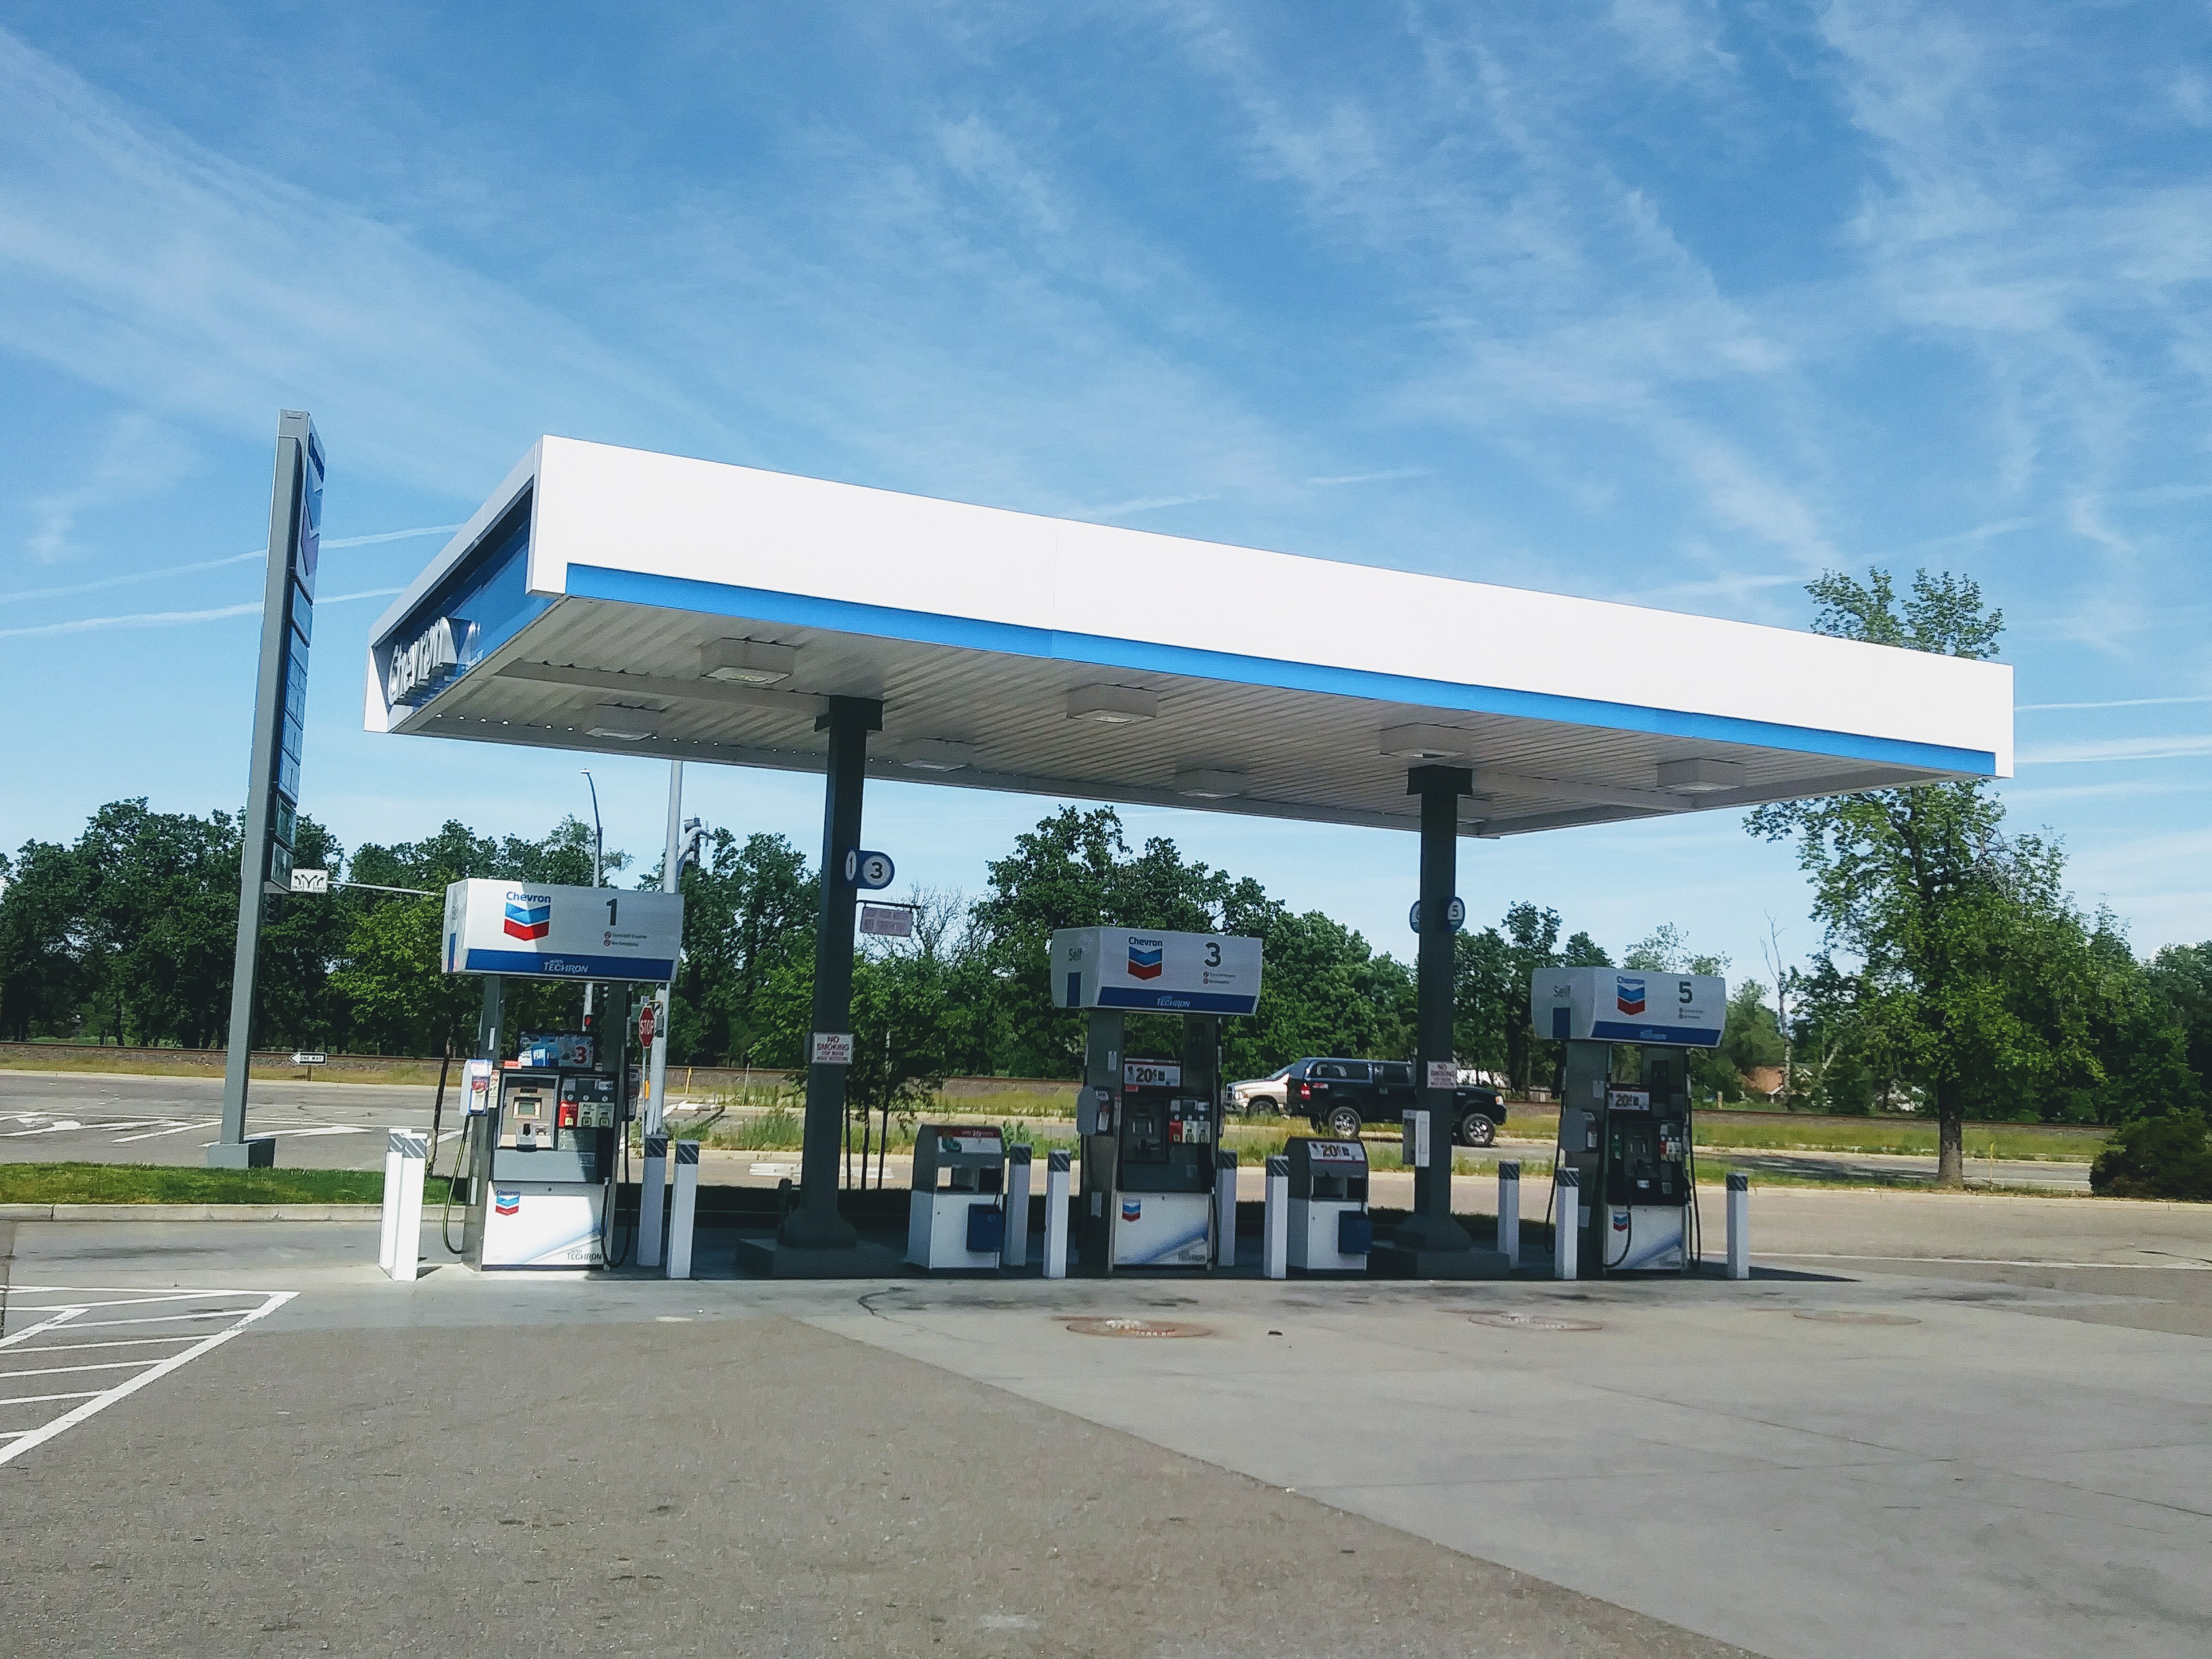 Gas station in Anderson, CA